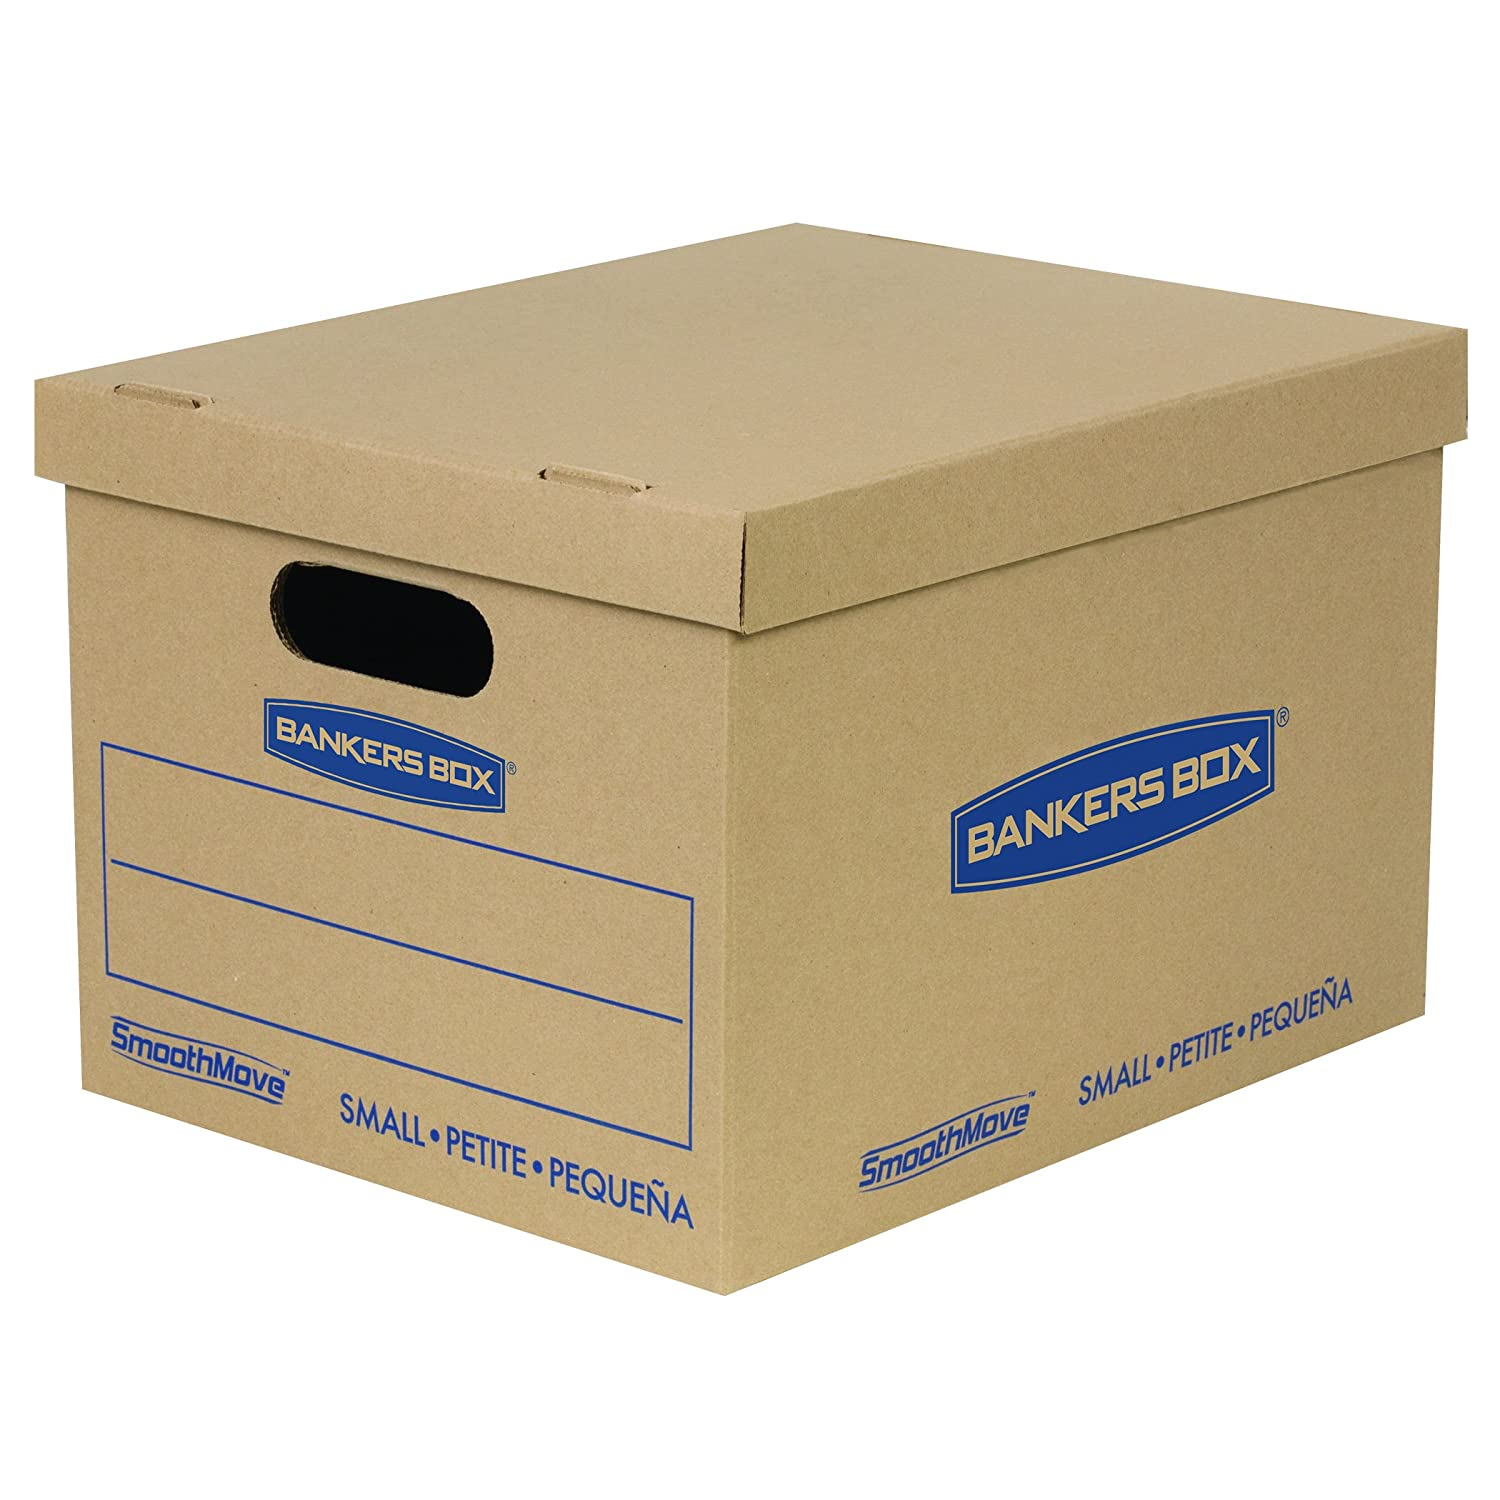 Amazon.com  Bankers Box SmoothMove Classic Moving Boxes Small 15 x 12 x 10 10 pk (7714901)  Office Products  sc 1 st  Amazon.com & Amazon.com : Bankers Box SmoothMove Classic Moving Boxes Small ... Aboutintivar.Com